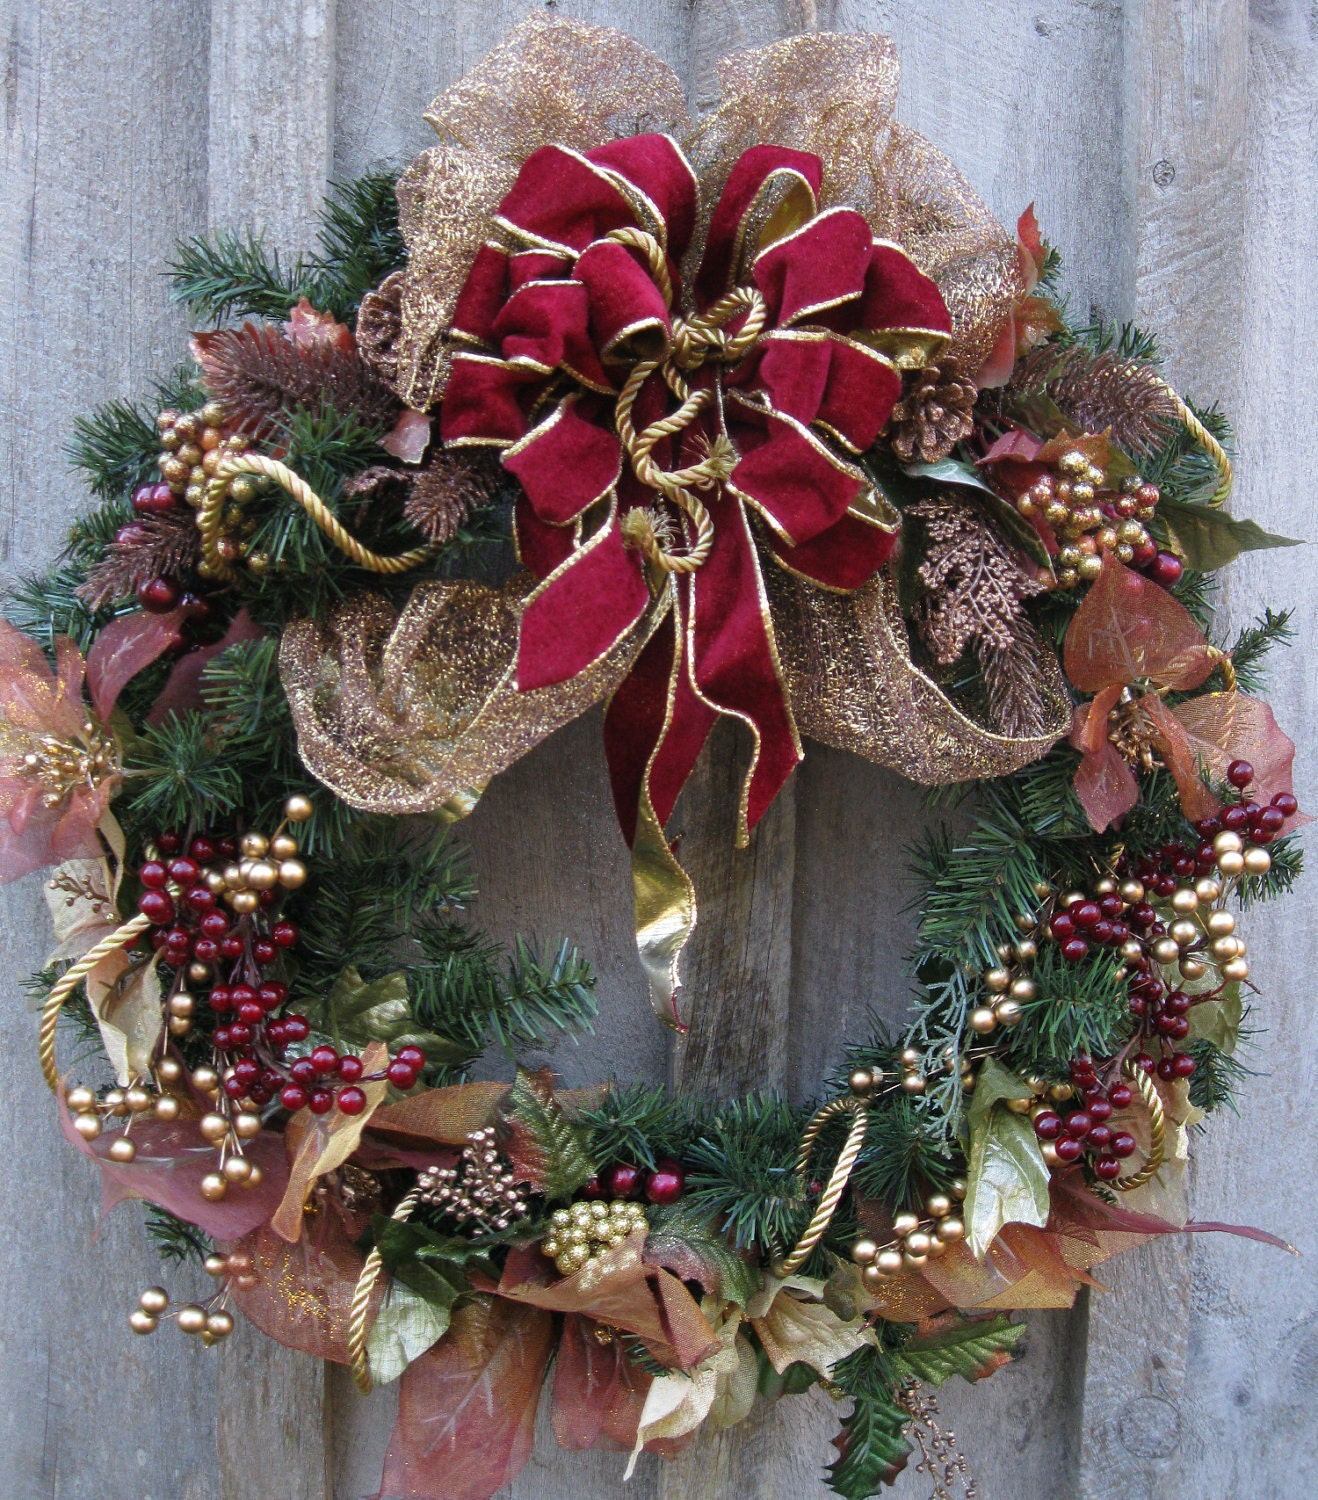 Christmas wreath holiday door wreath victorian decor Christmas wreath decorations